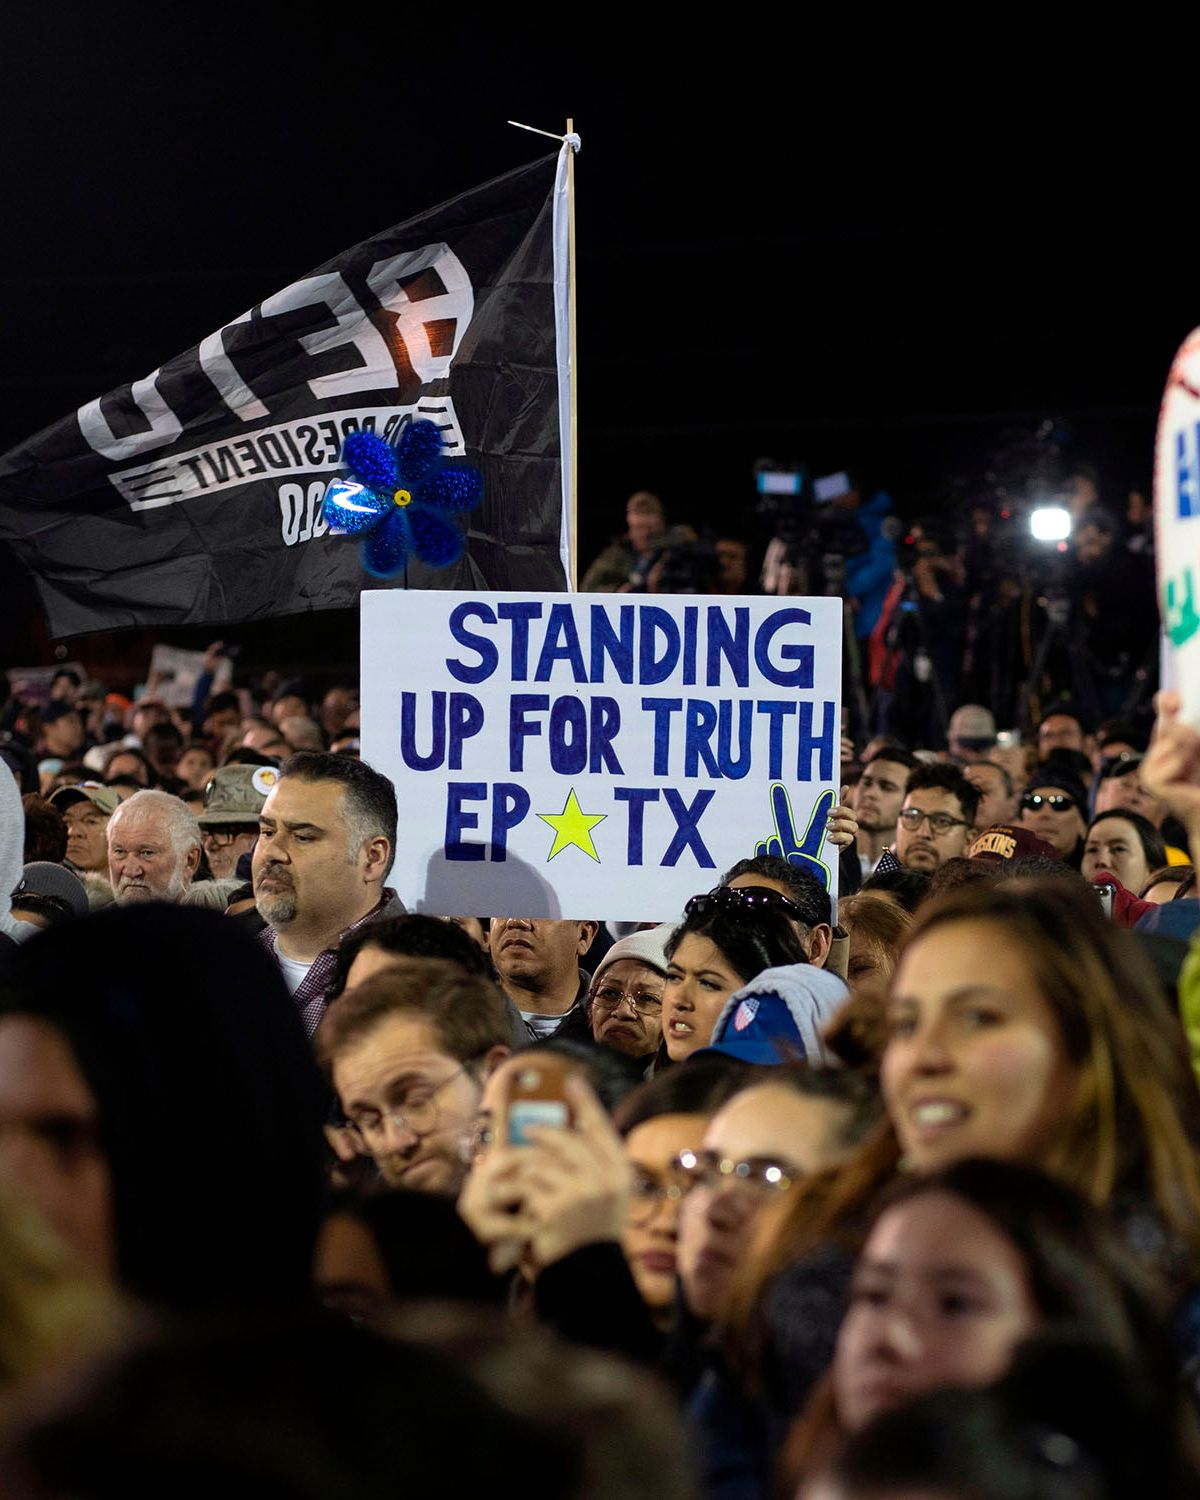 """Supporters listen to Beto O'Rourke at Chalio Acosta Sports Center at the end of the anti-Trump """"March for Truth"""" in El Paso, Texas, on February 11, 2019."""